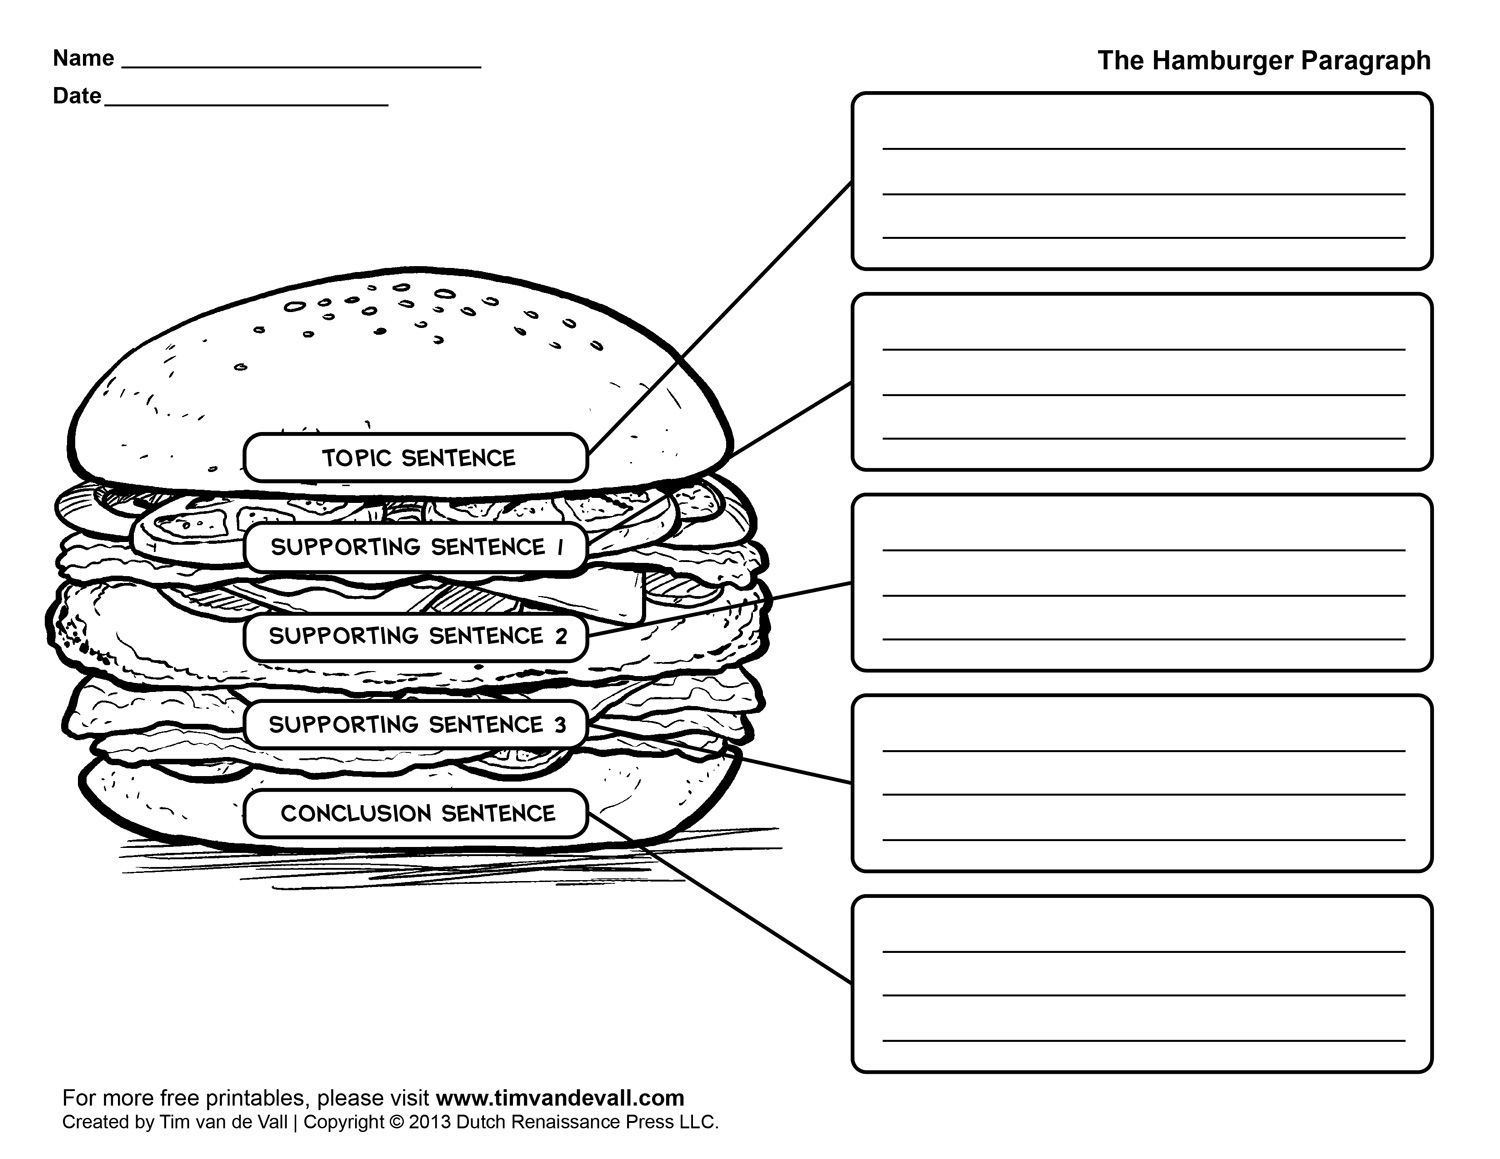 009 Essay Example Five Paragraph Graphic Wonderful Organizer 5 Middle School Doc Full